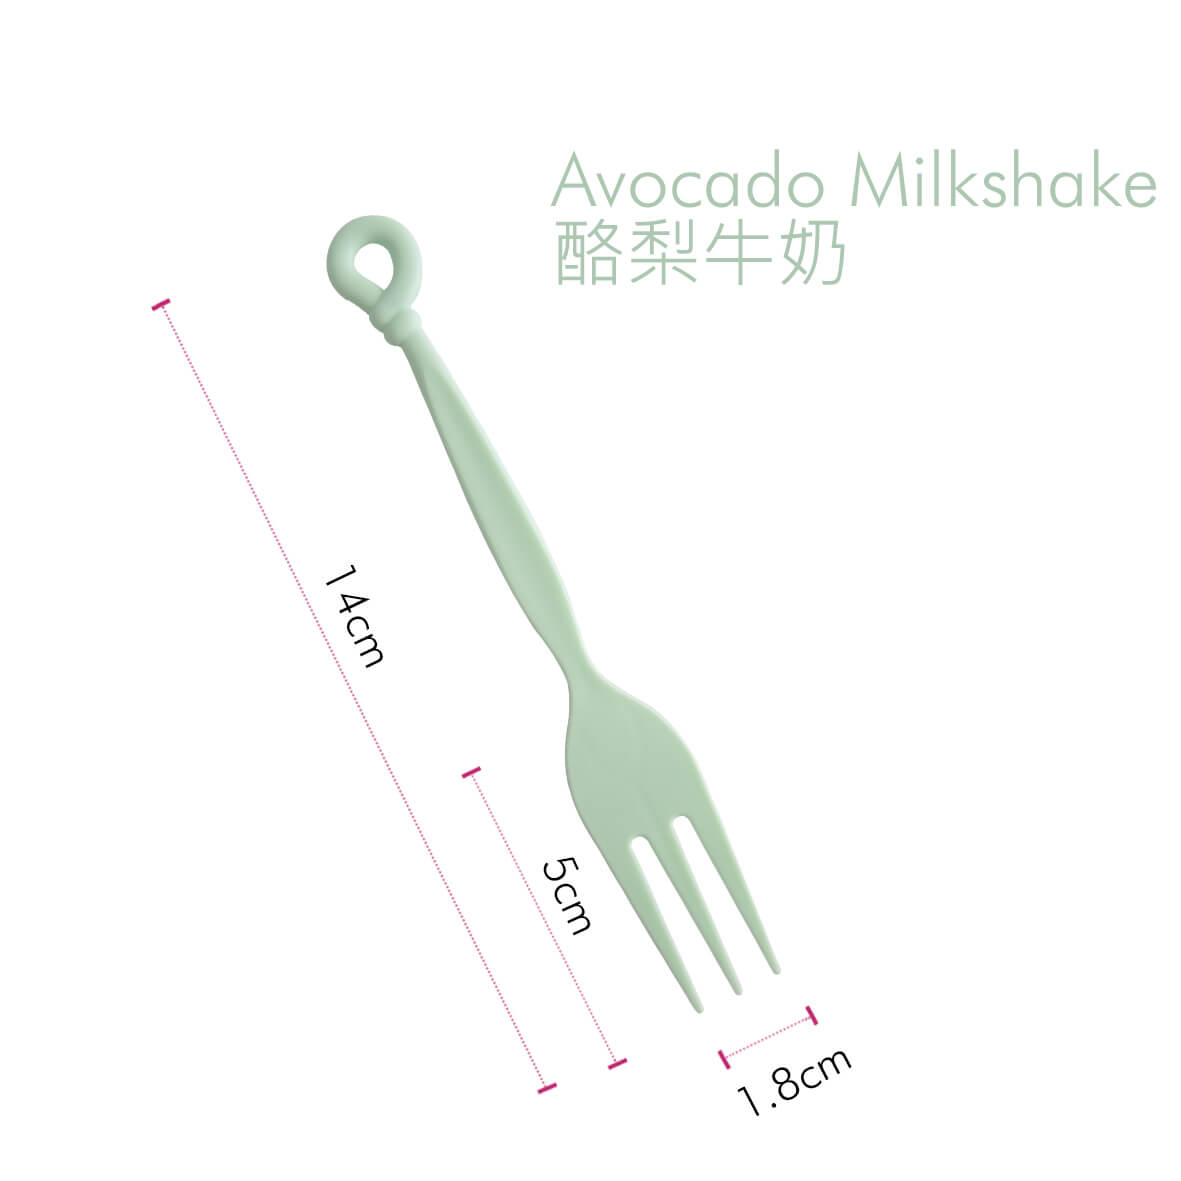 Avocado Milkshake-TwistFork